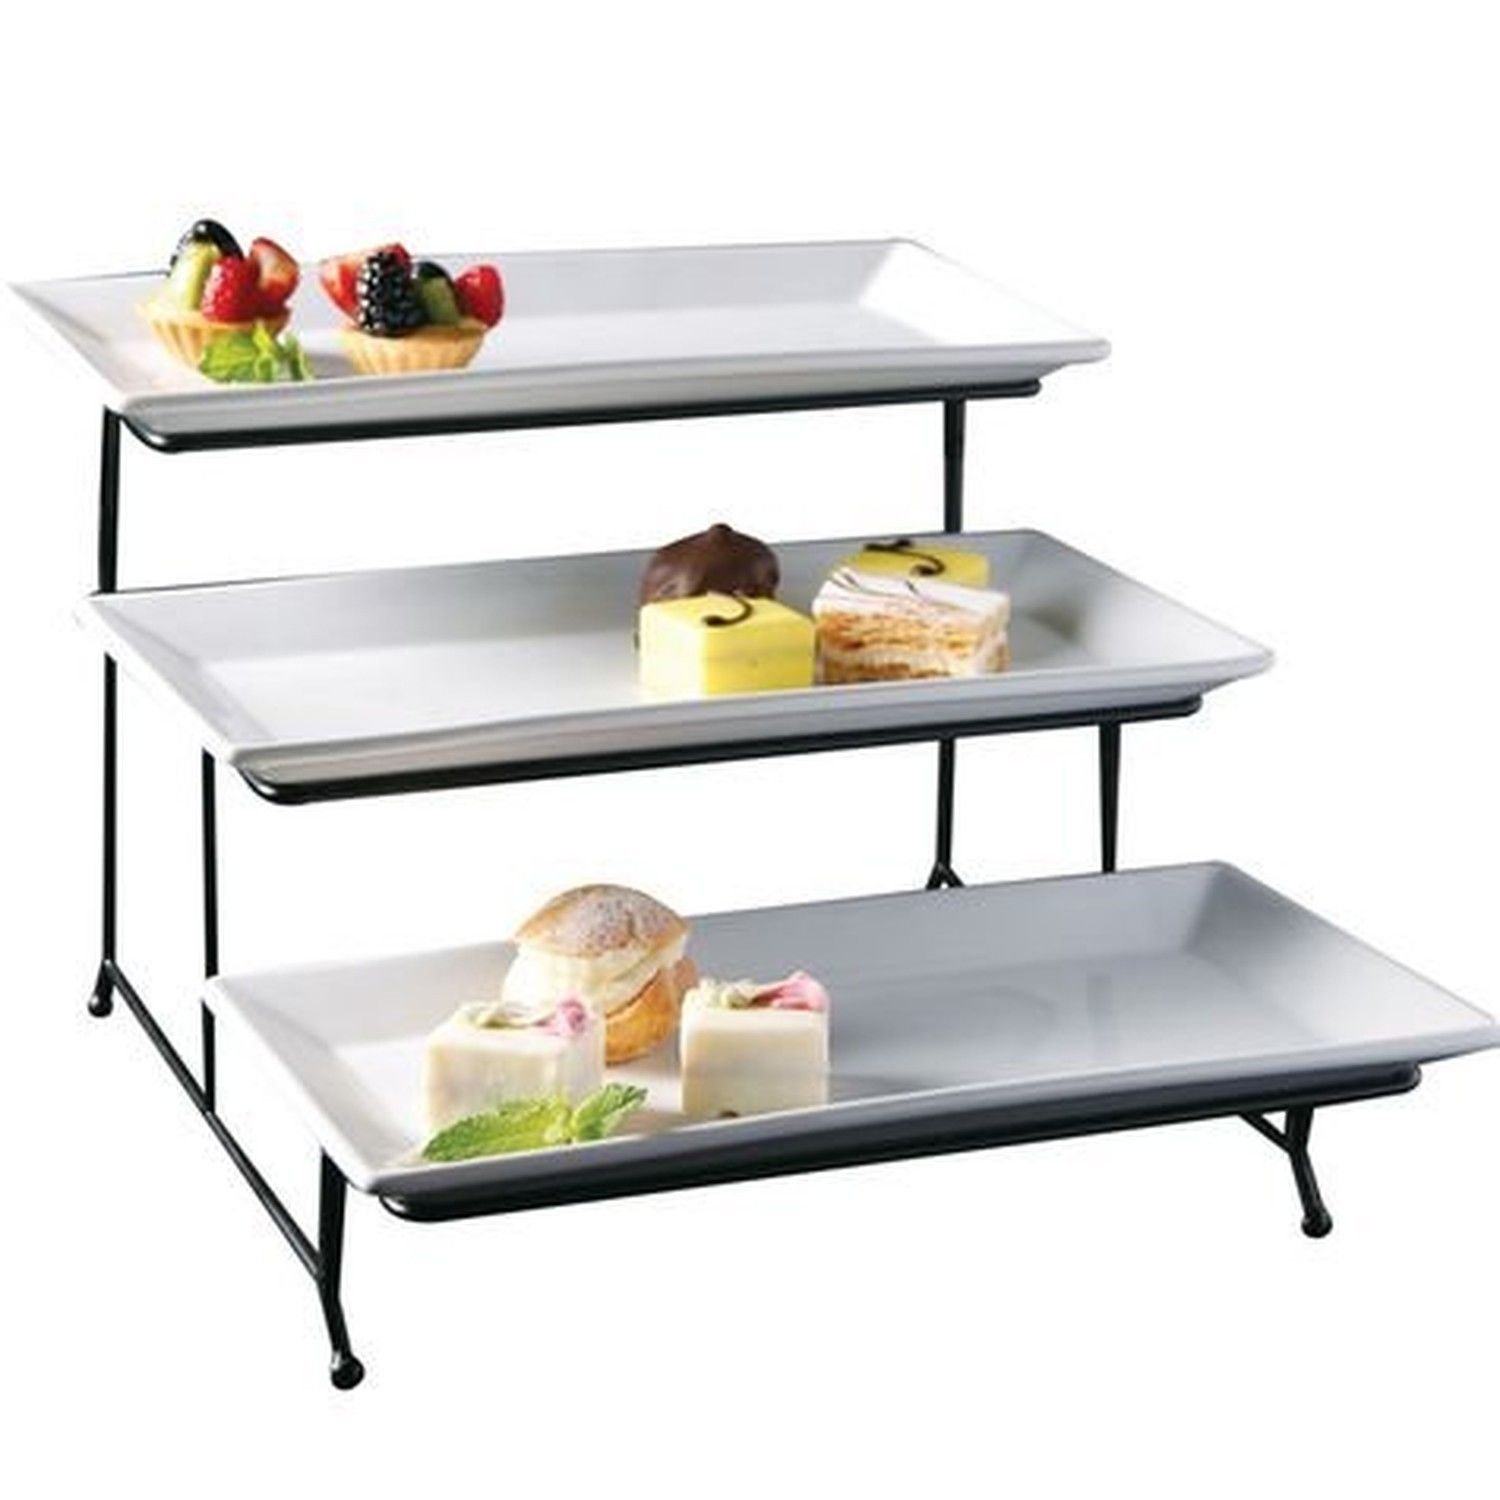 Lovely Amazon.com: Porcelain 3 Tier Serving Tray - Rectangular Serving  XF02